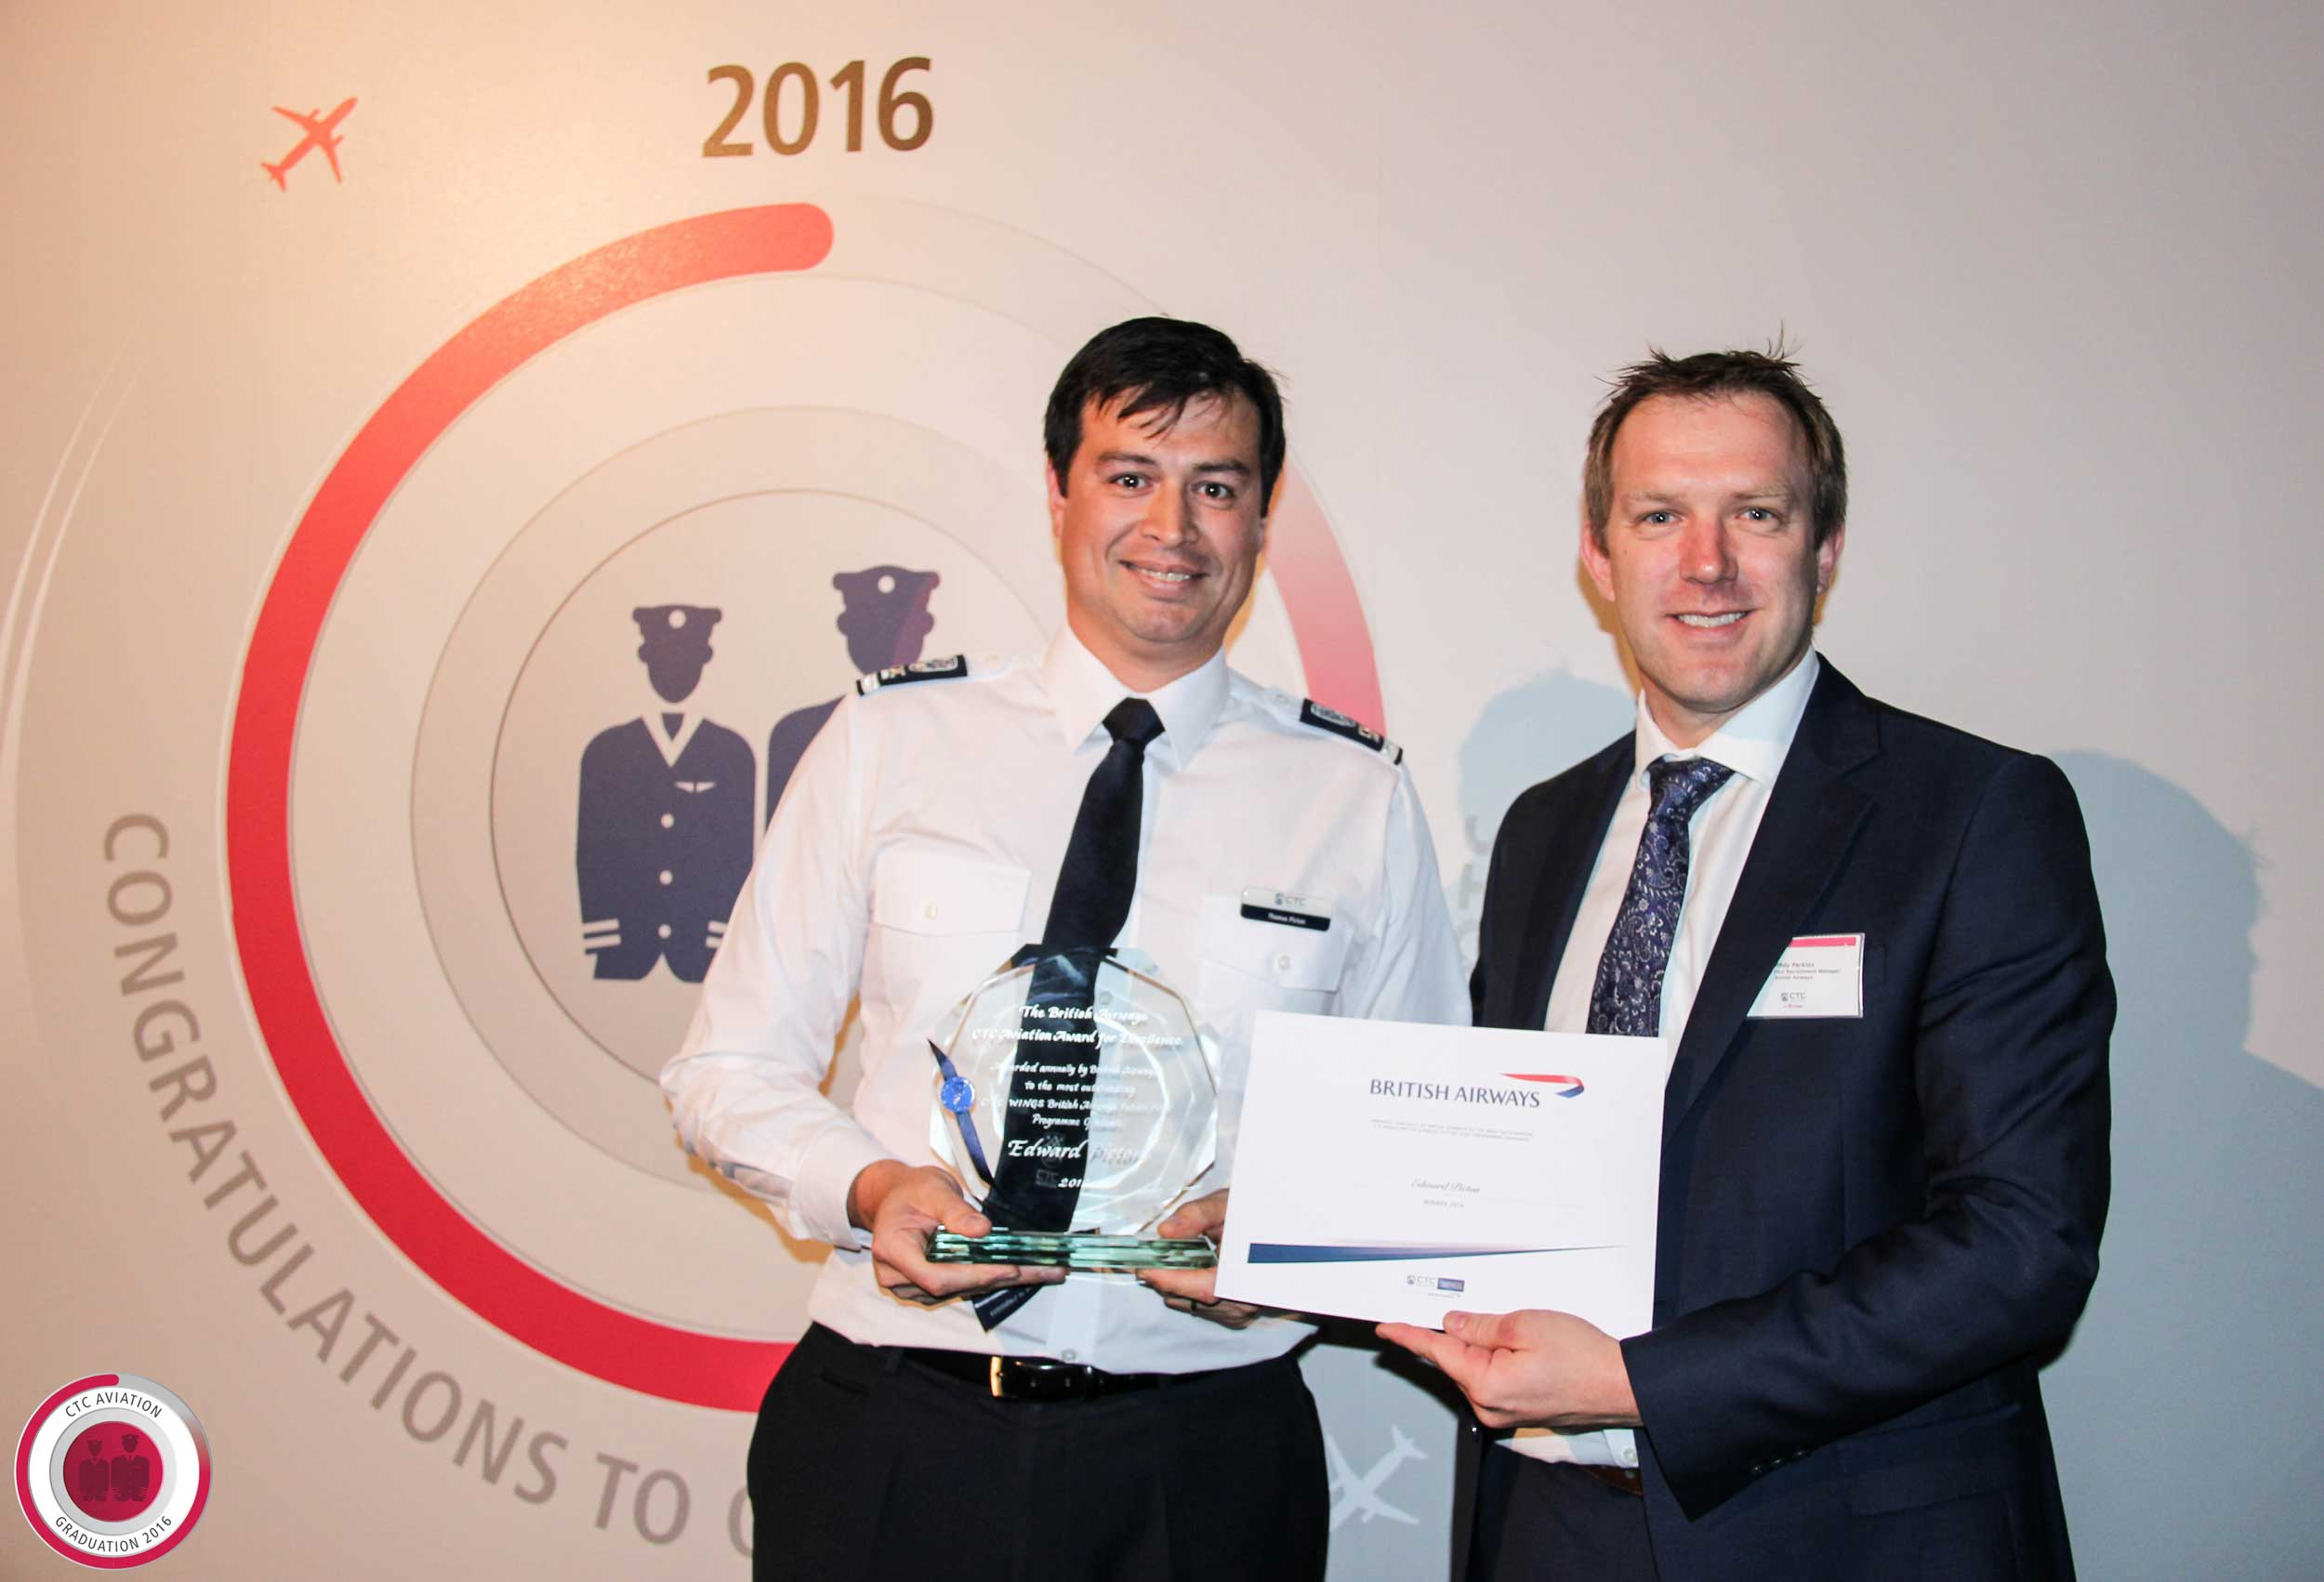 BA award winner Edward Picton, left, and BA pilot recruitment manager Andrew Perkins.